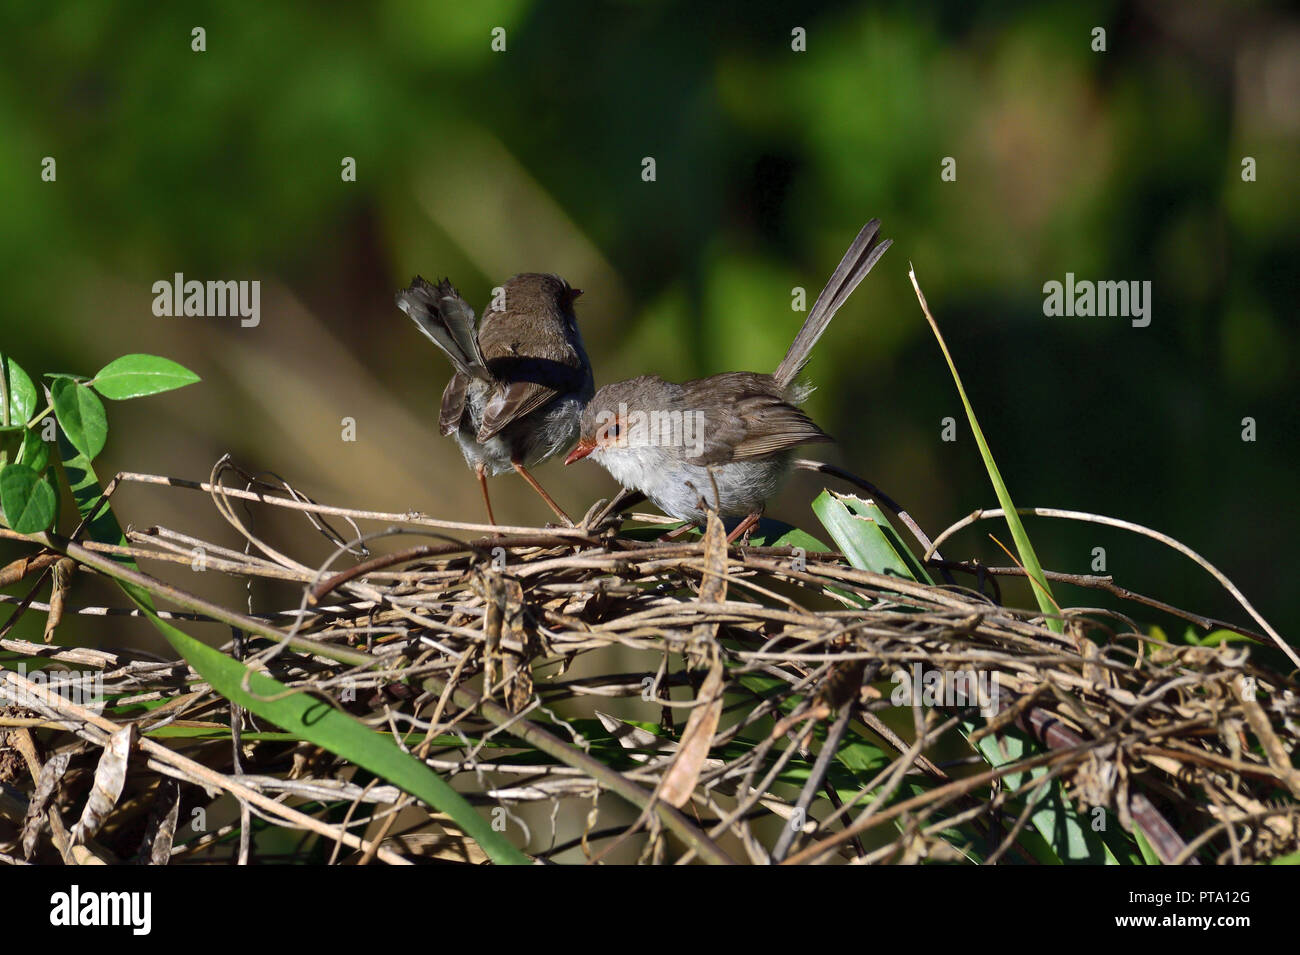 Two Australian, Queensland Female Superb Fairy-wrens ( Malurus cyaneus ) perched on a tree branch - Stock Image